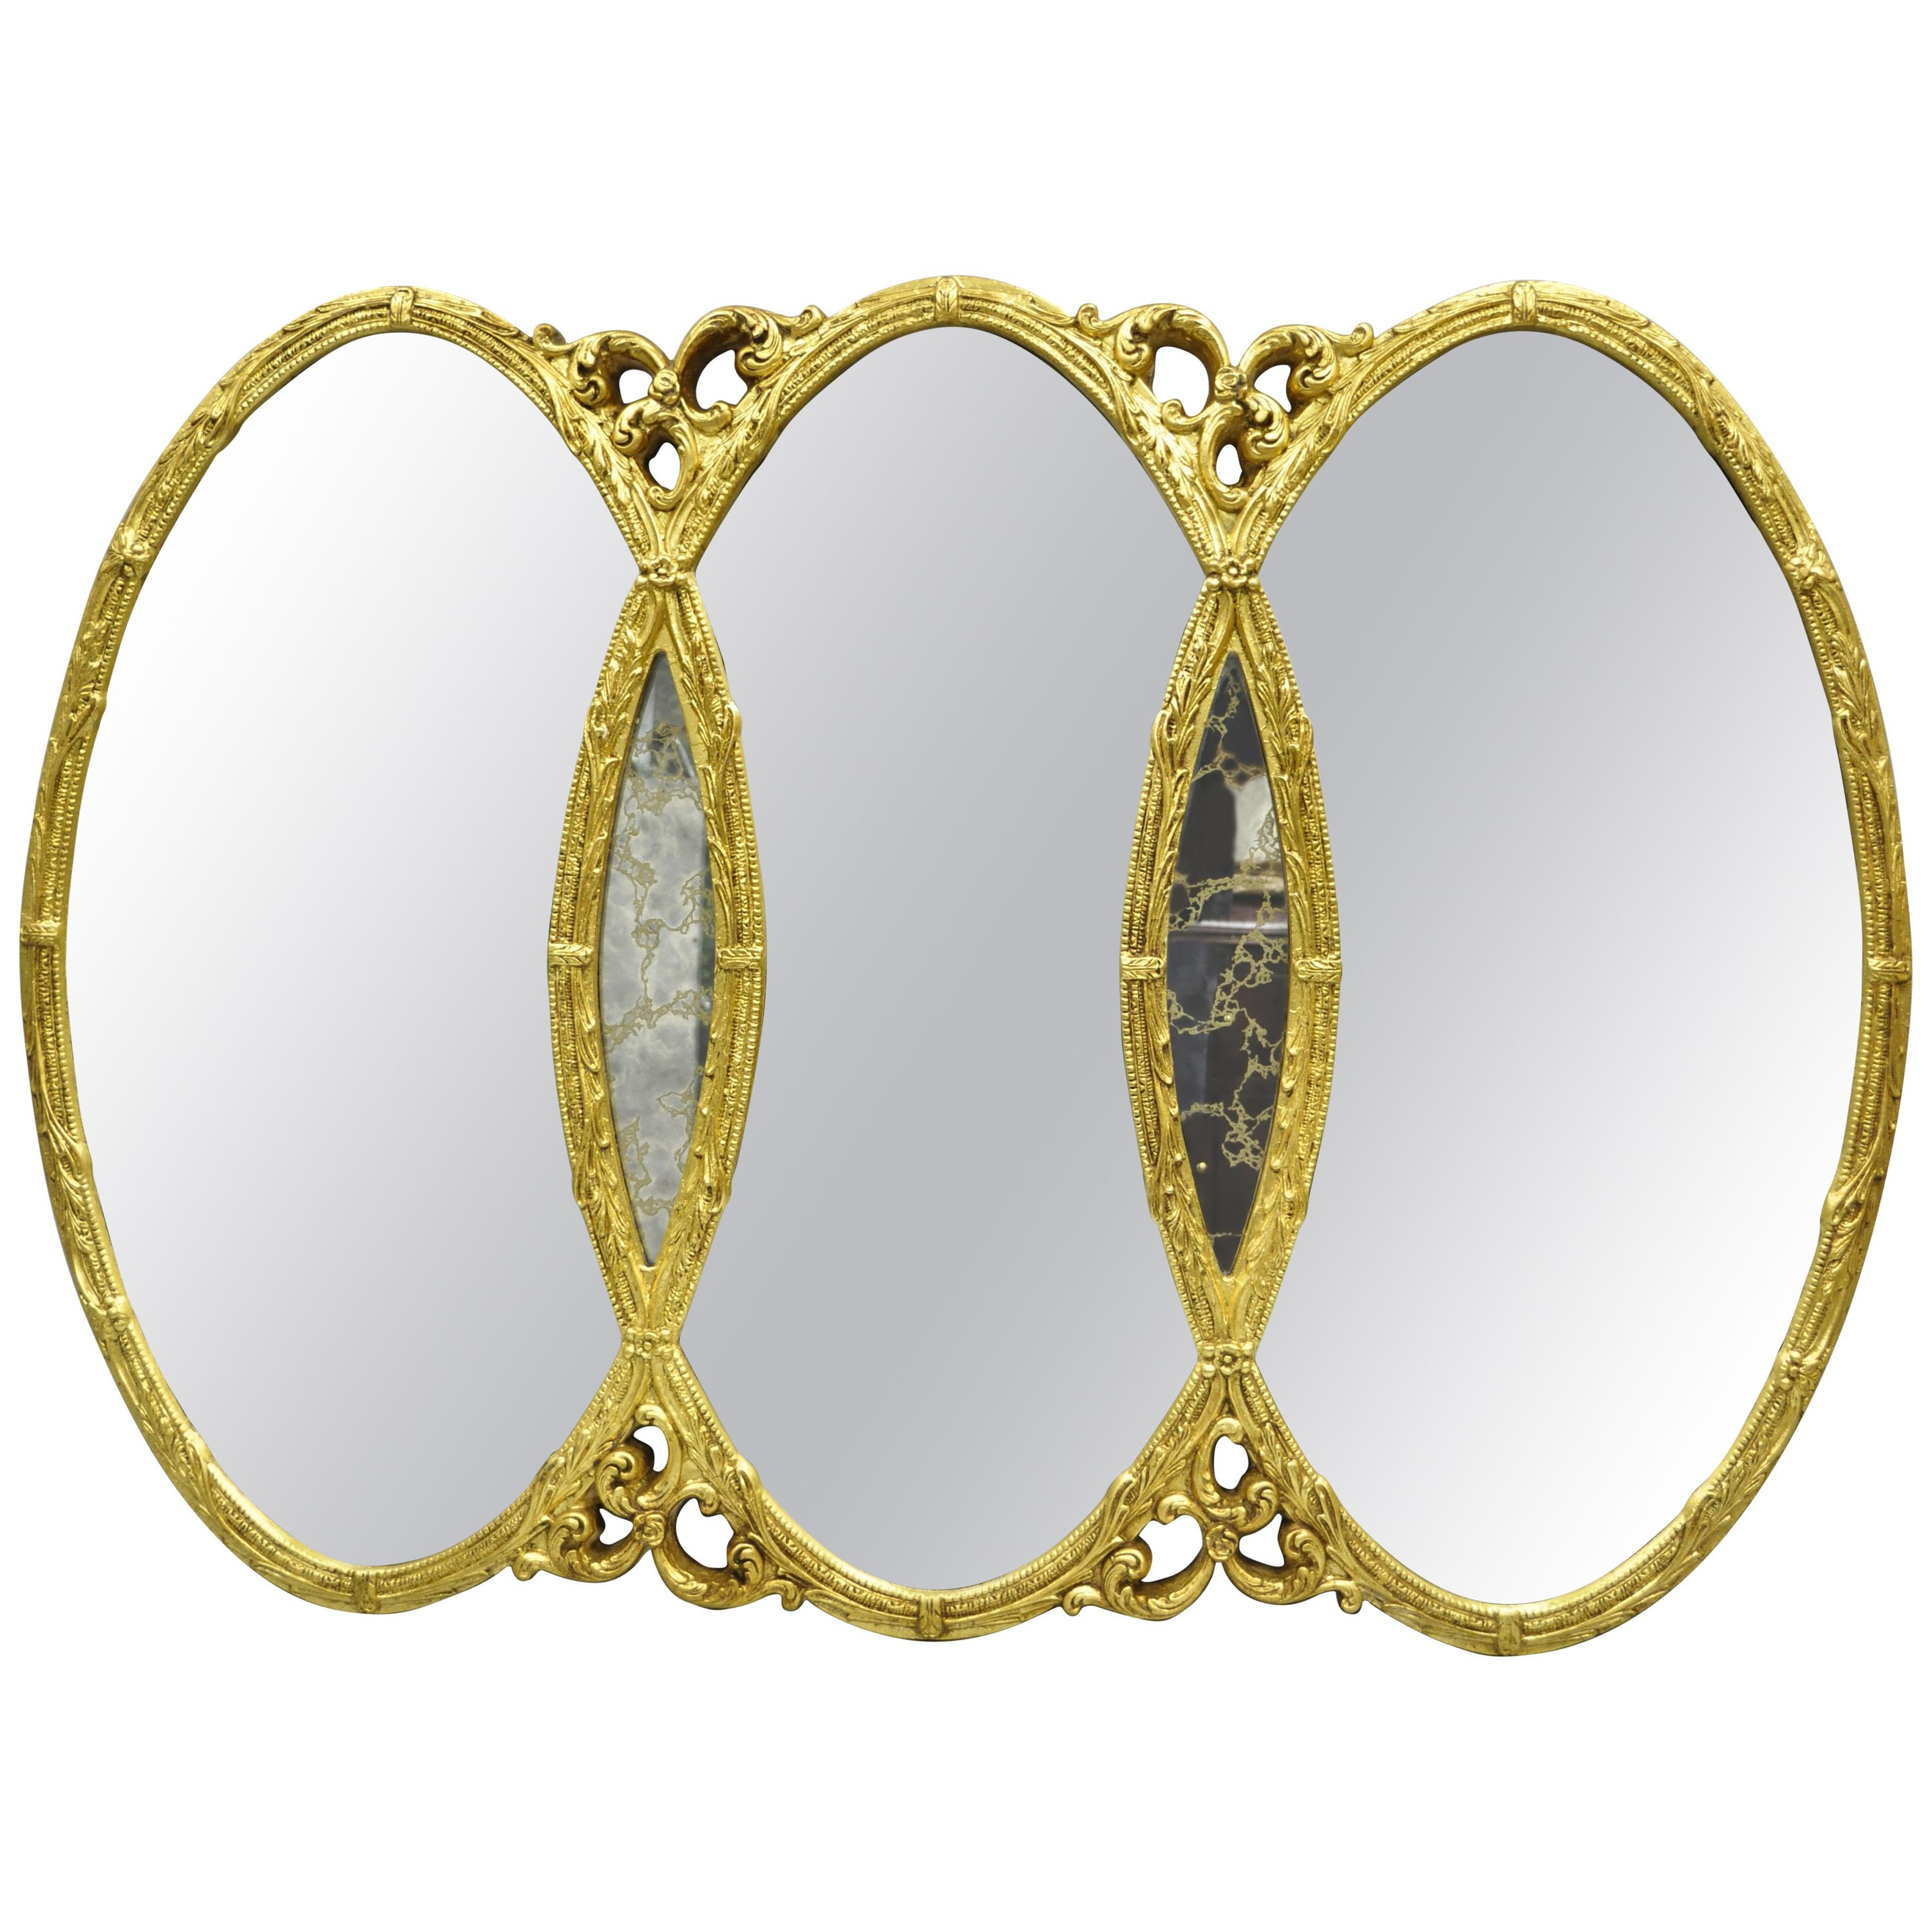 Preferred Gold French Hollywood Regency Triptych Triple Interlocking Oval Wall Mirror In Triple Oval Wall Mirrors (View 17 of 20)